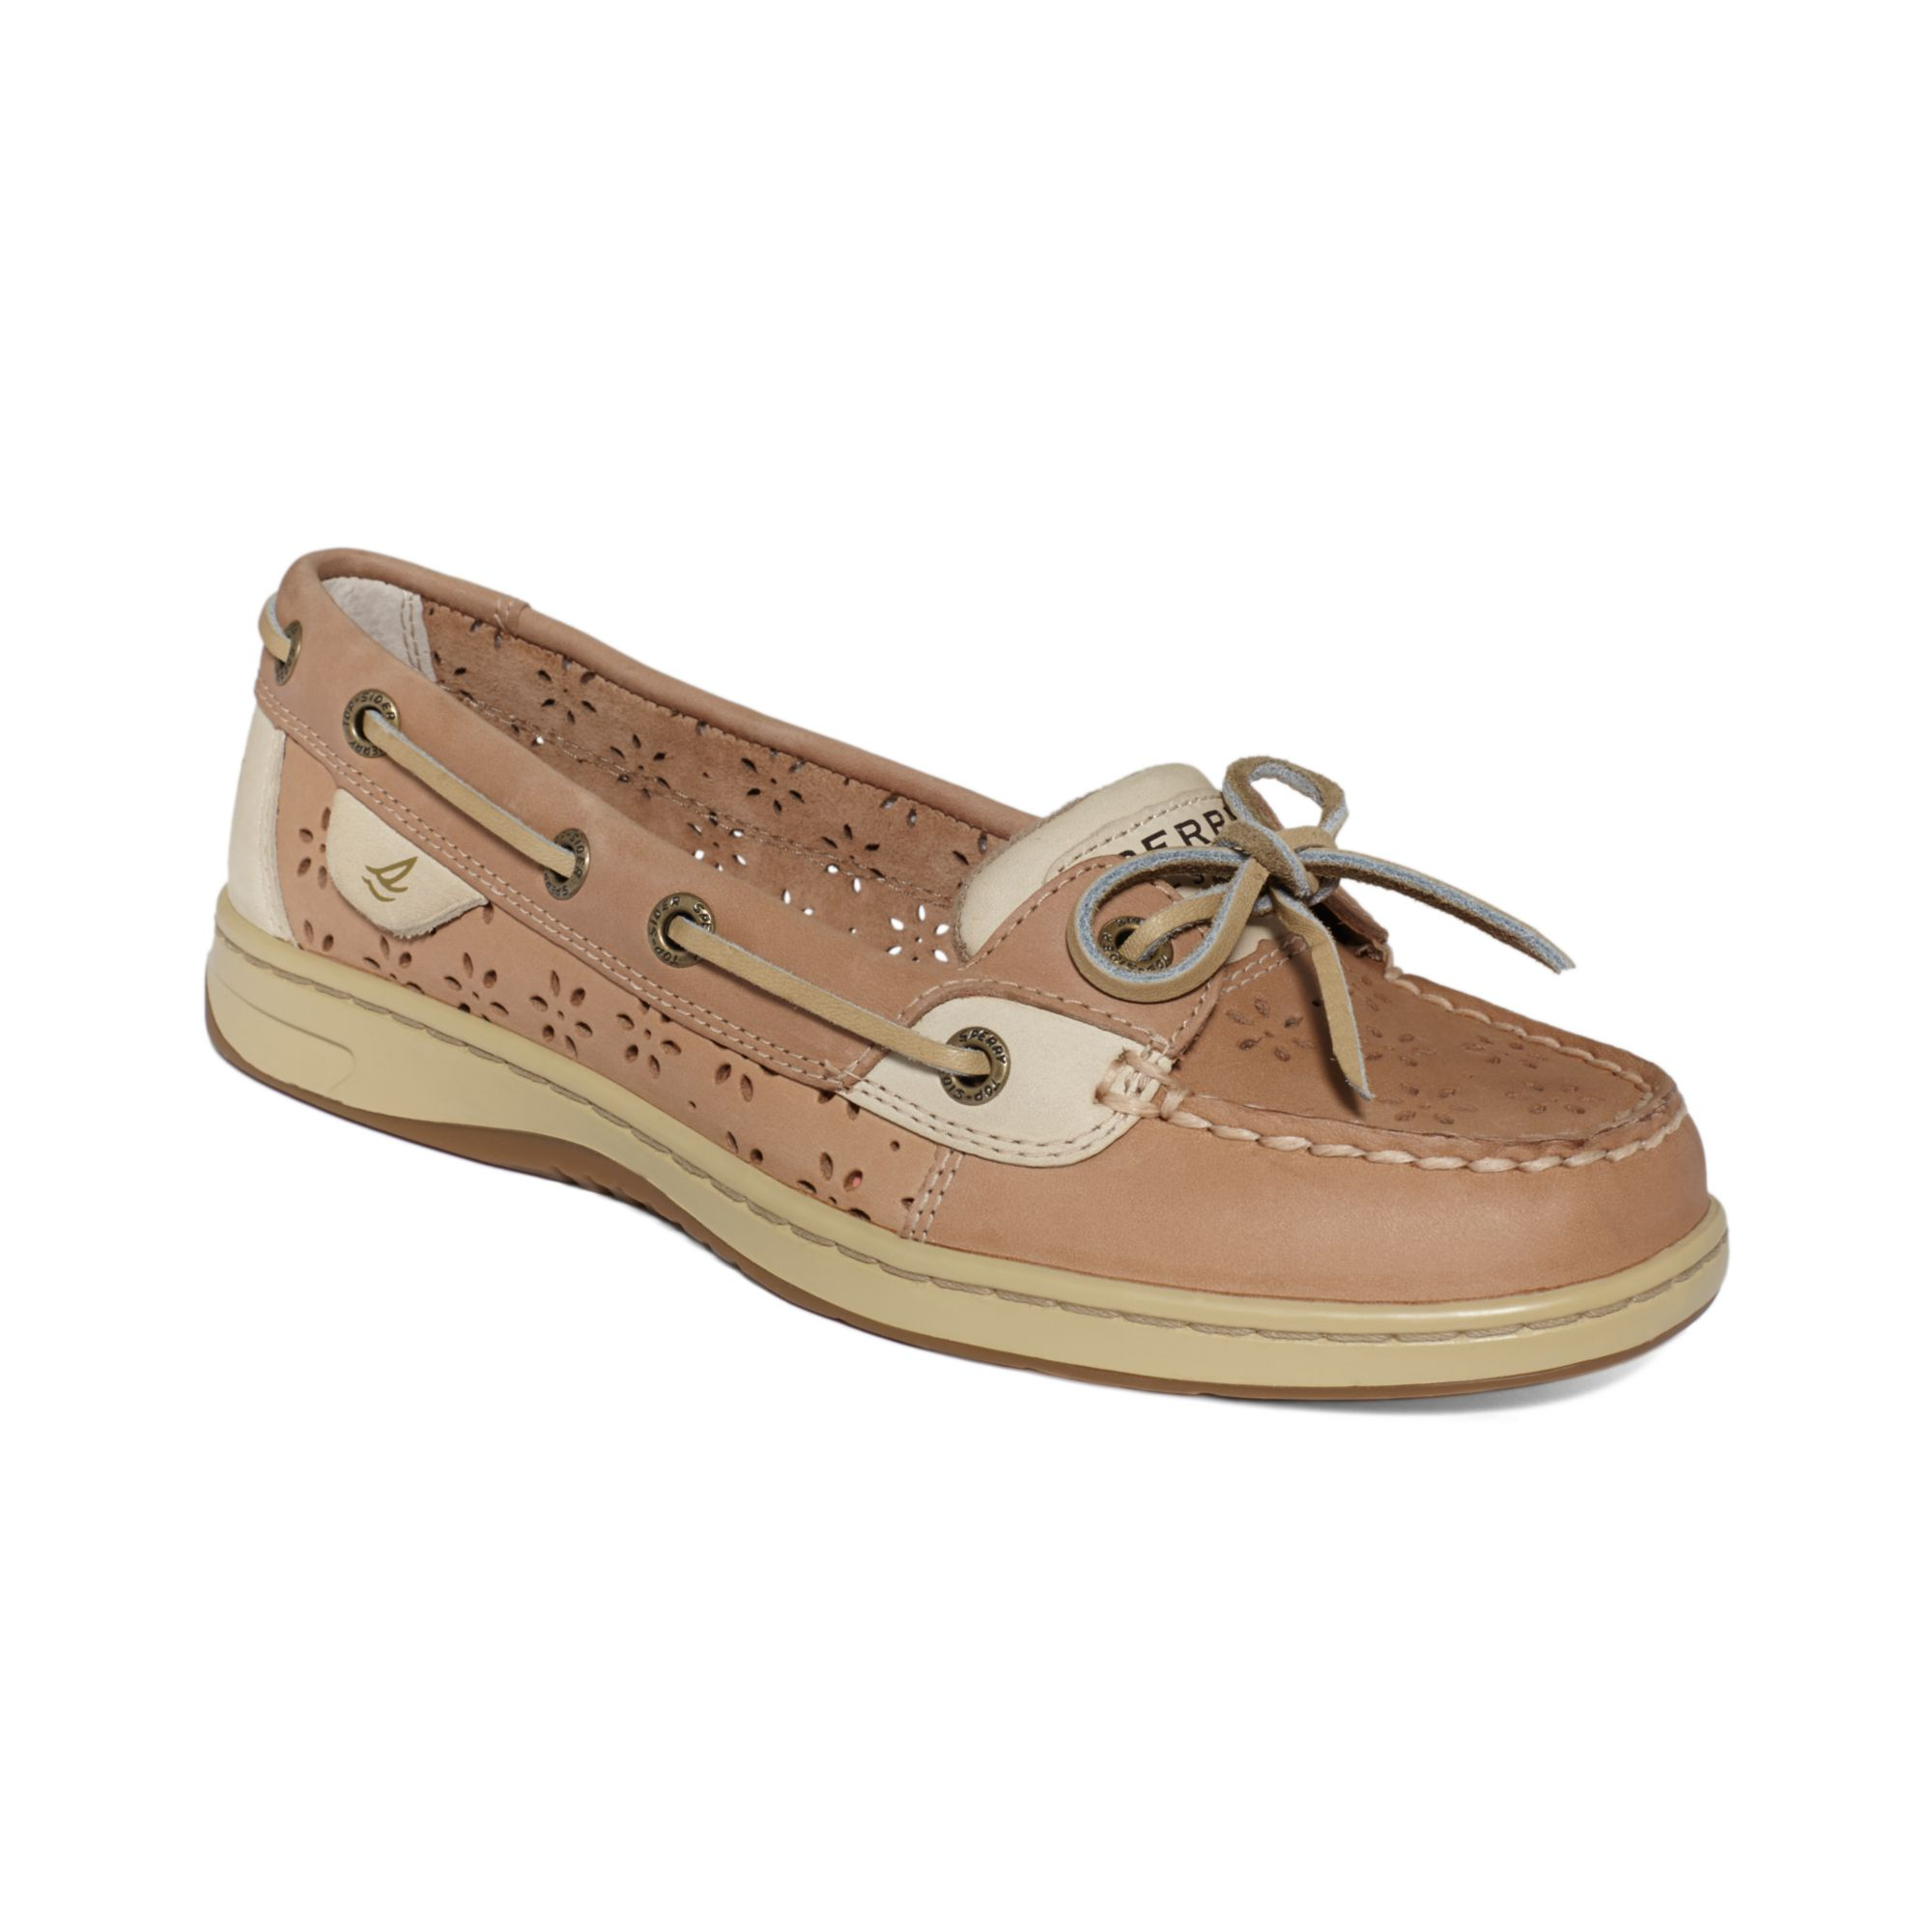 Top Sider Deck Shoes